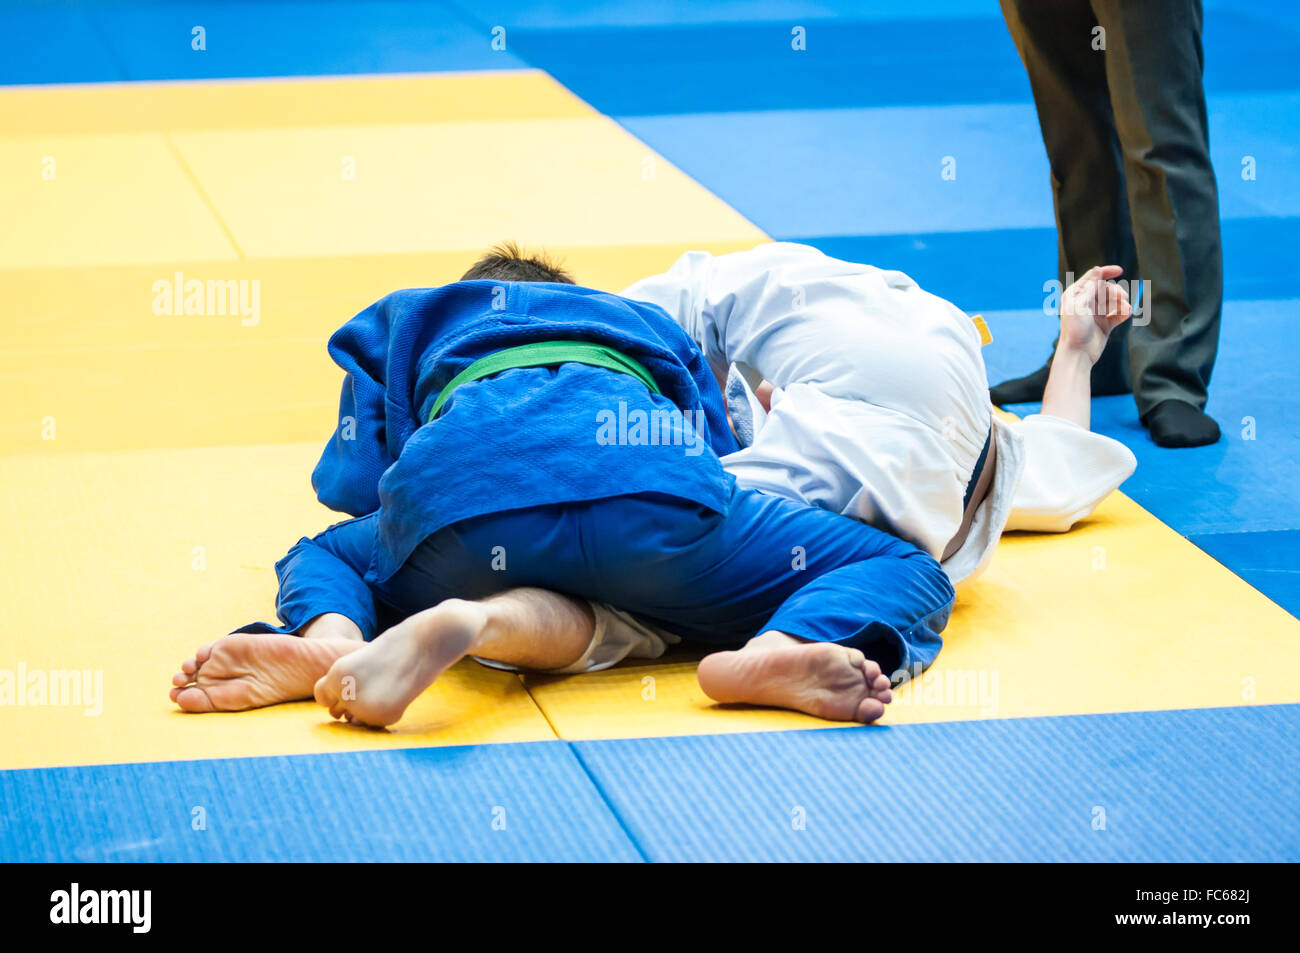 The youths involved in Judo - Stock Image